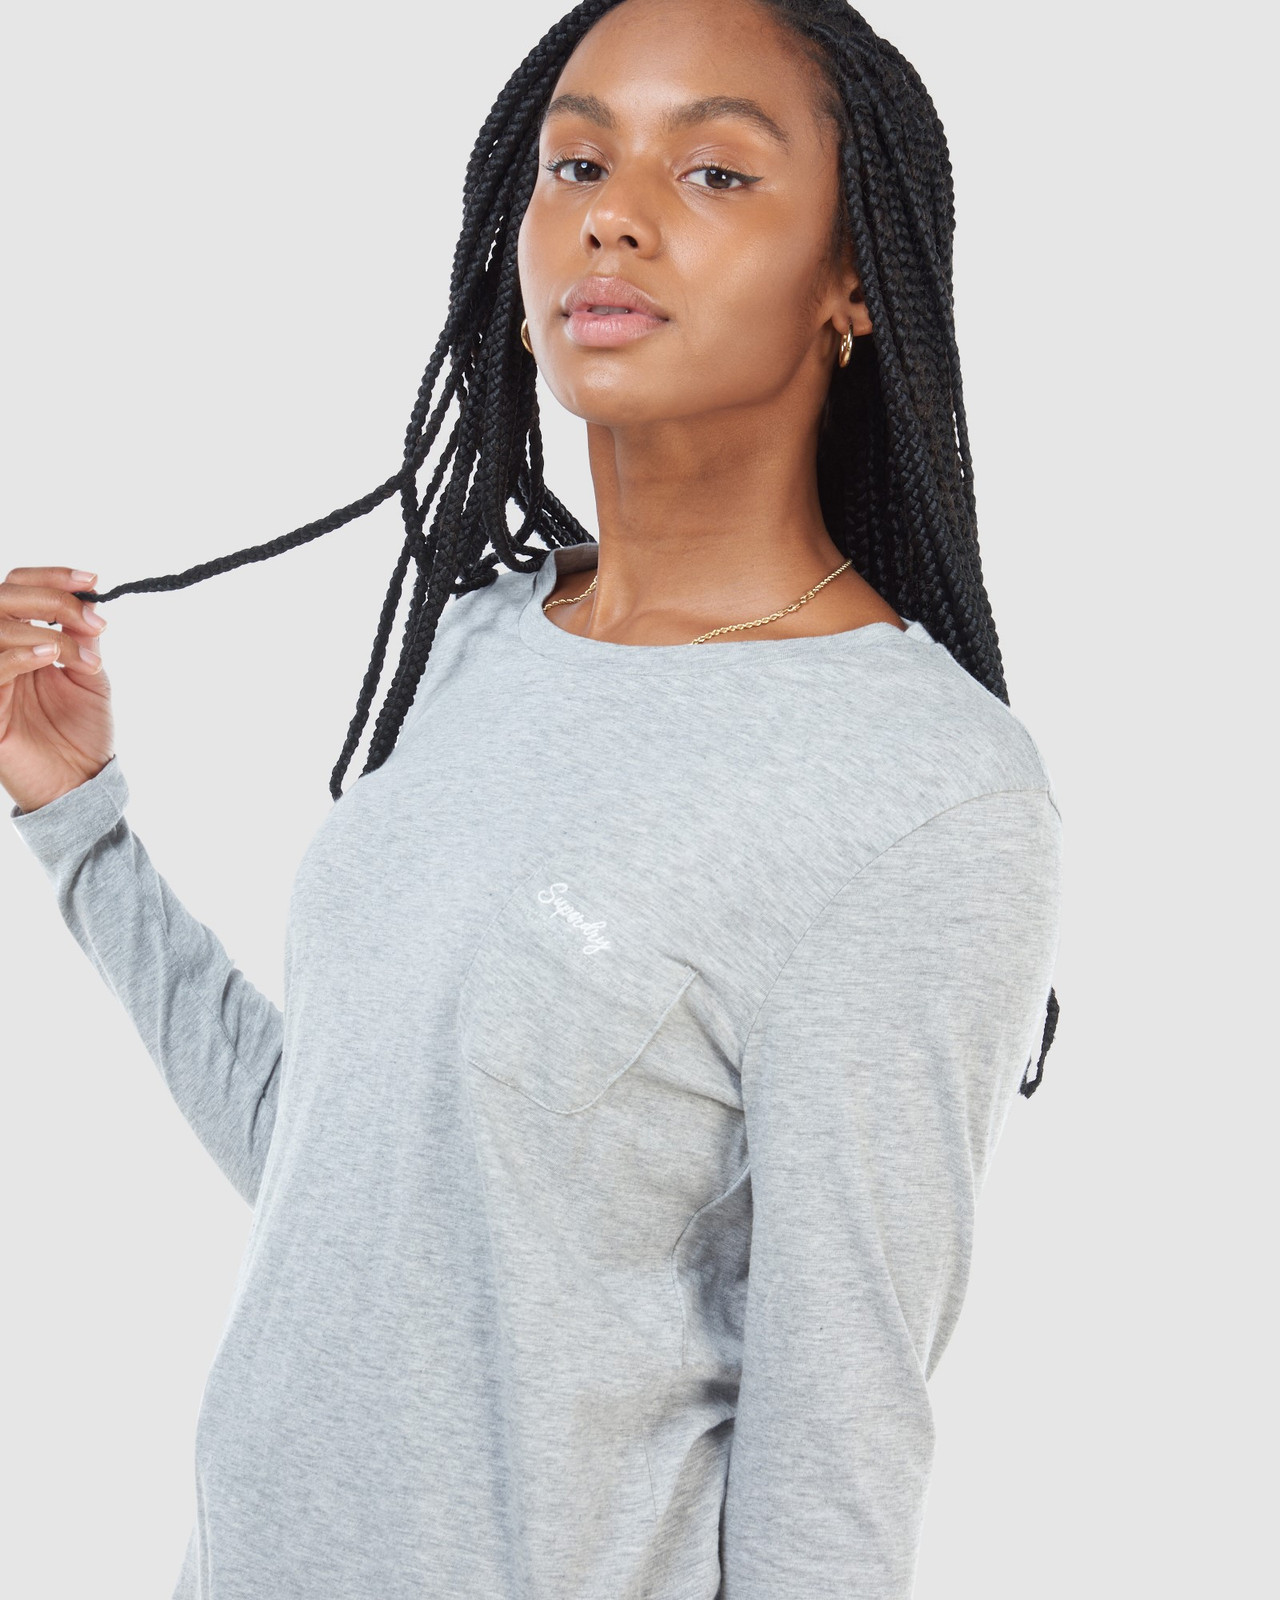 Superdry Womens SCRIPTED L/S CREW TOP Grey Long Sleeve Top 3